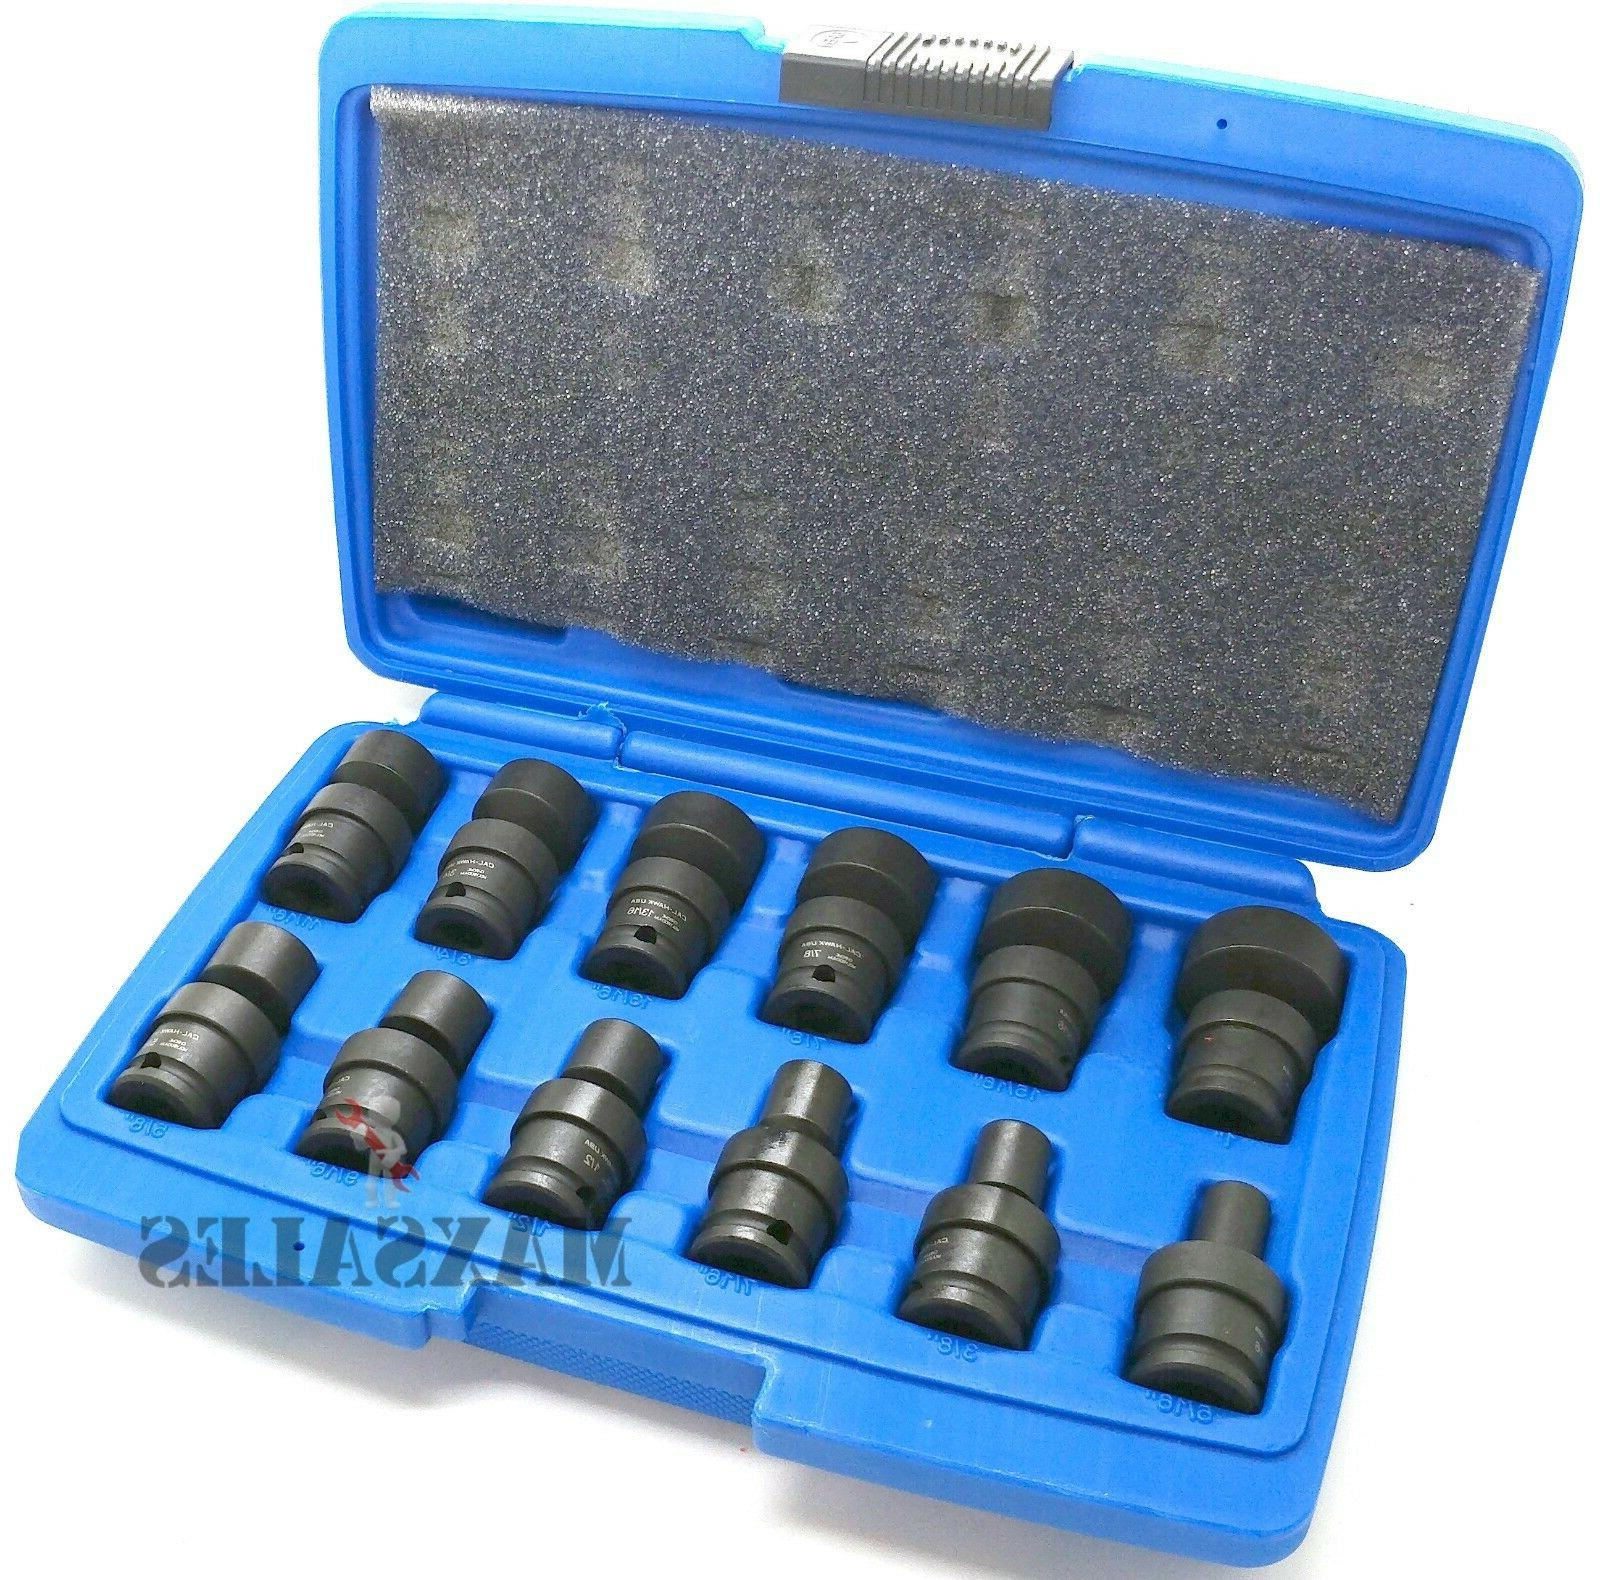 "24 PC 3/8"" 1/4"" DR. IMPACT SWIVEL SOCKET SAE/MM SET"